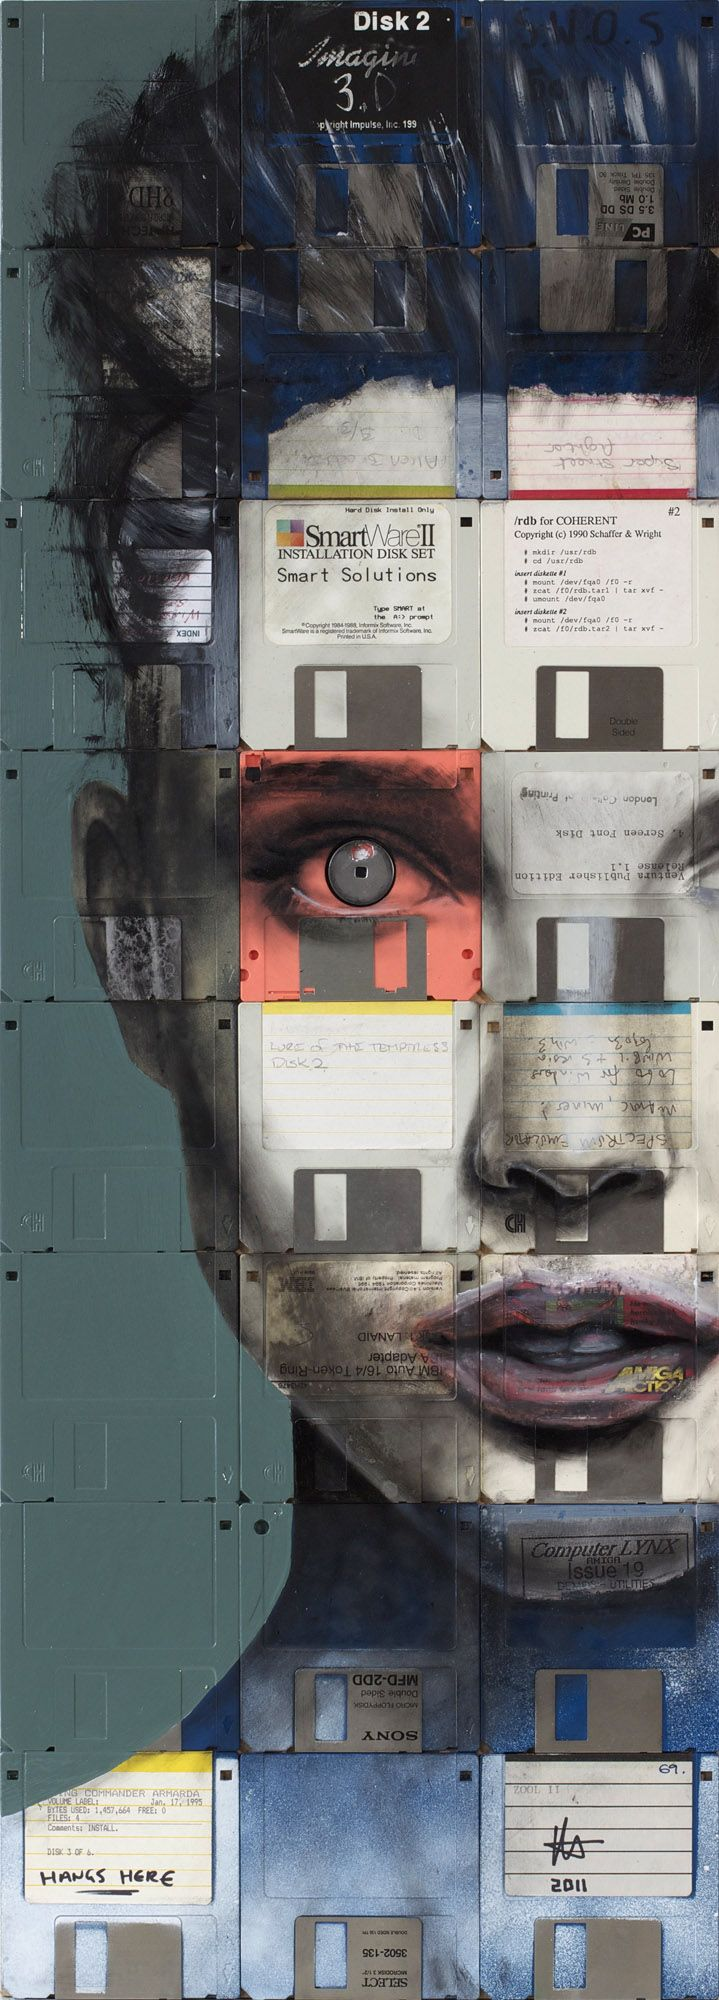 electress by nick gentry.. Old floppy disks